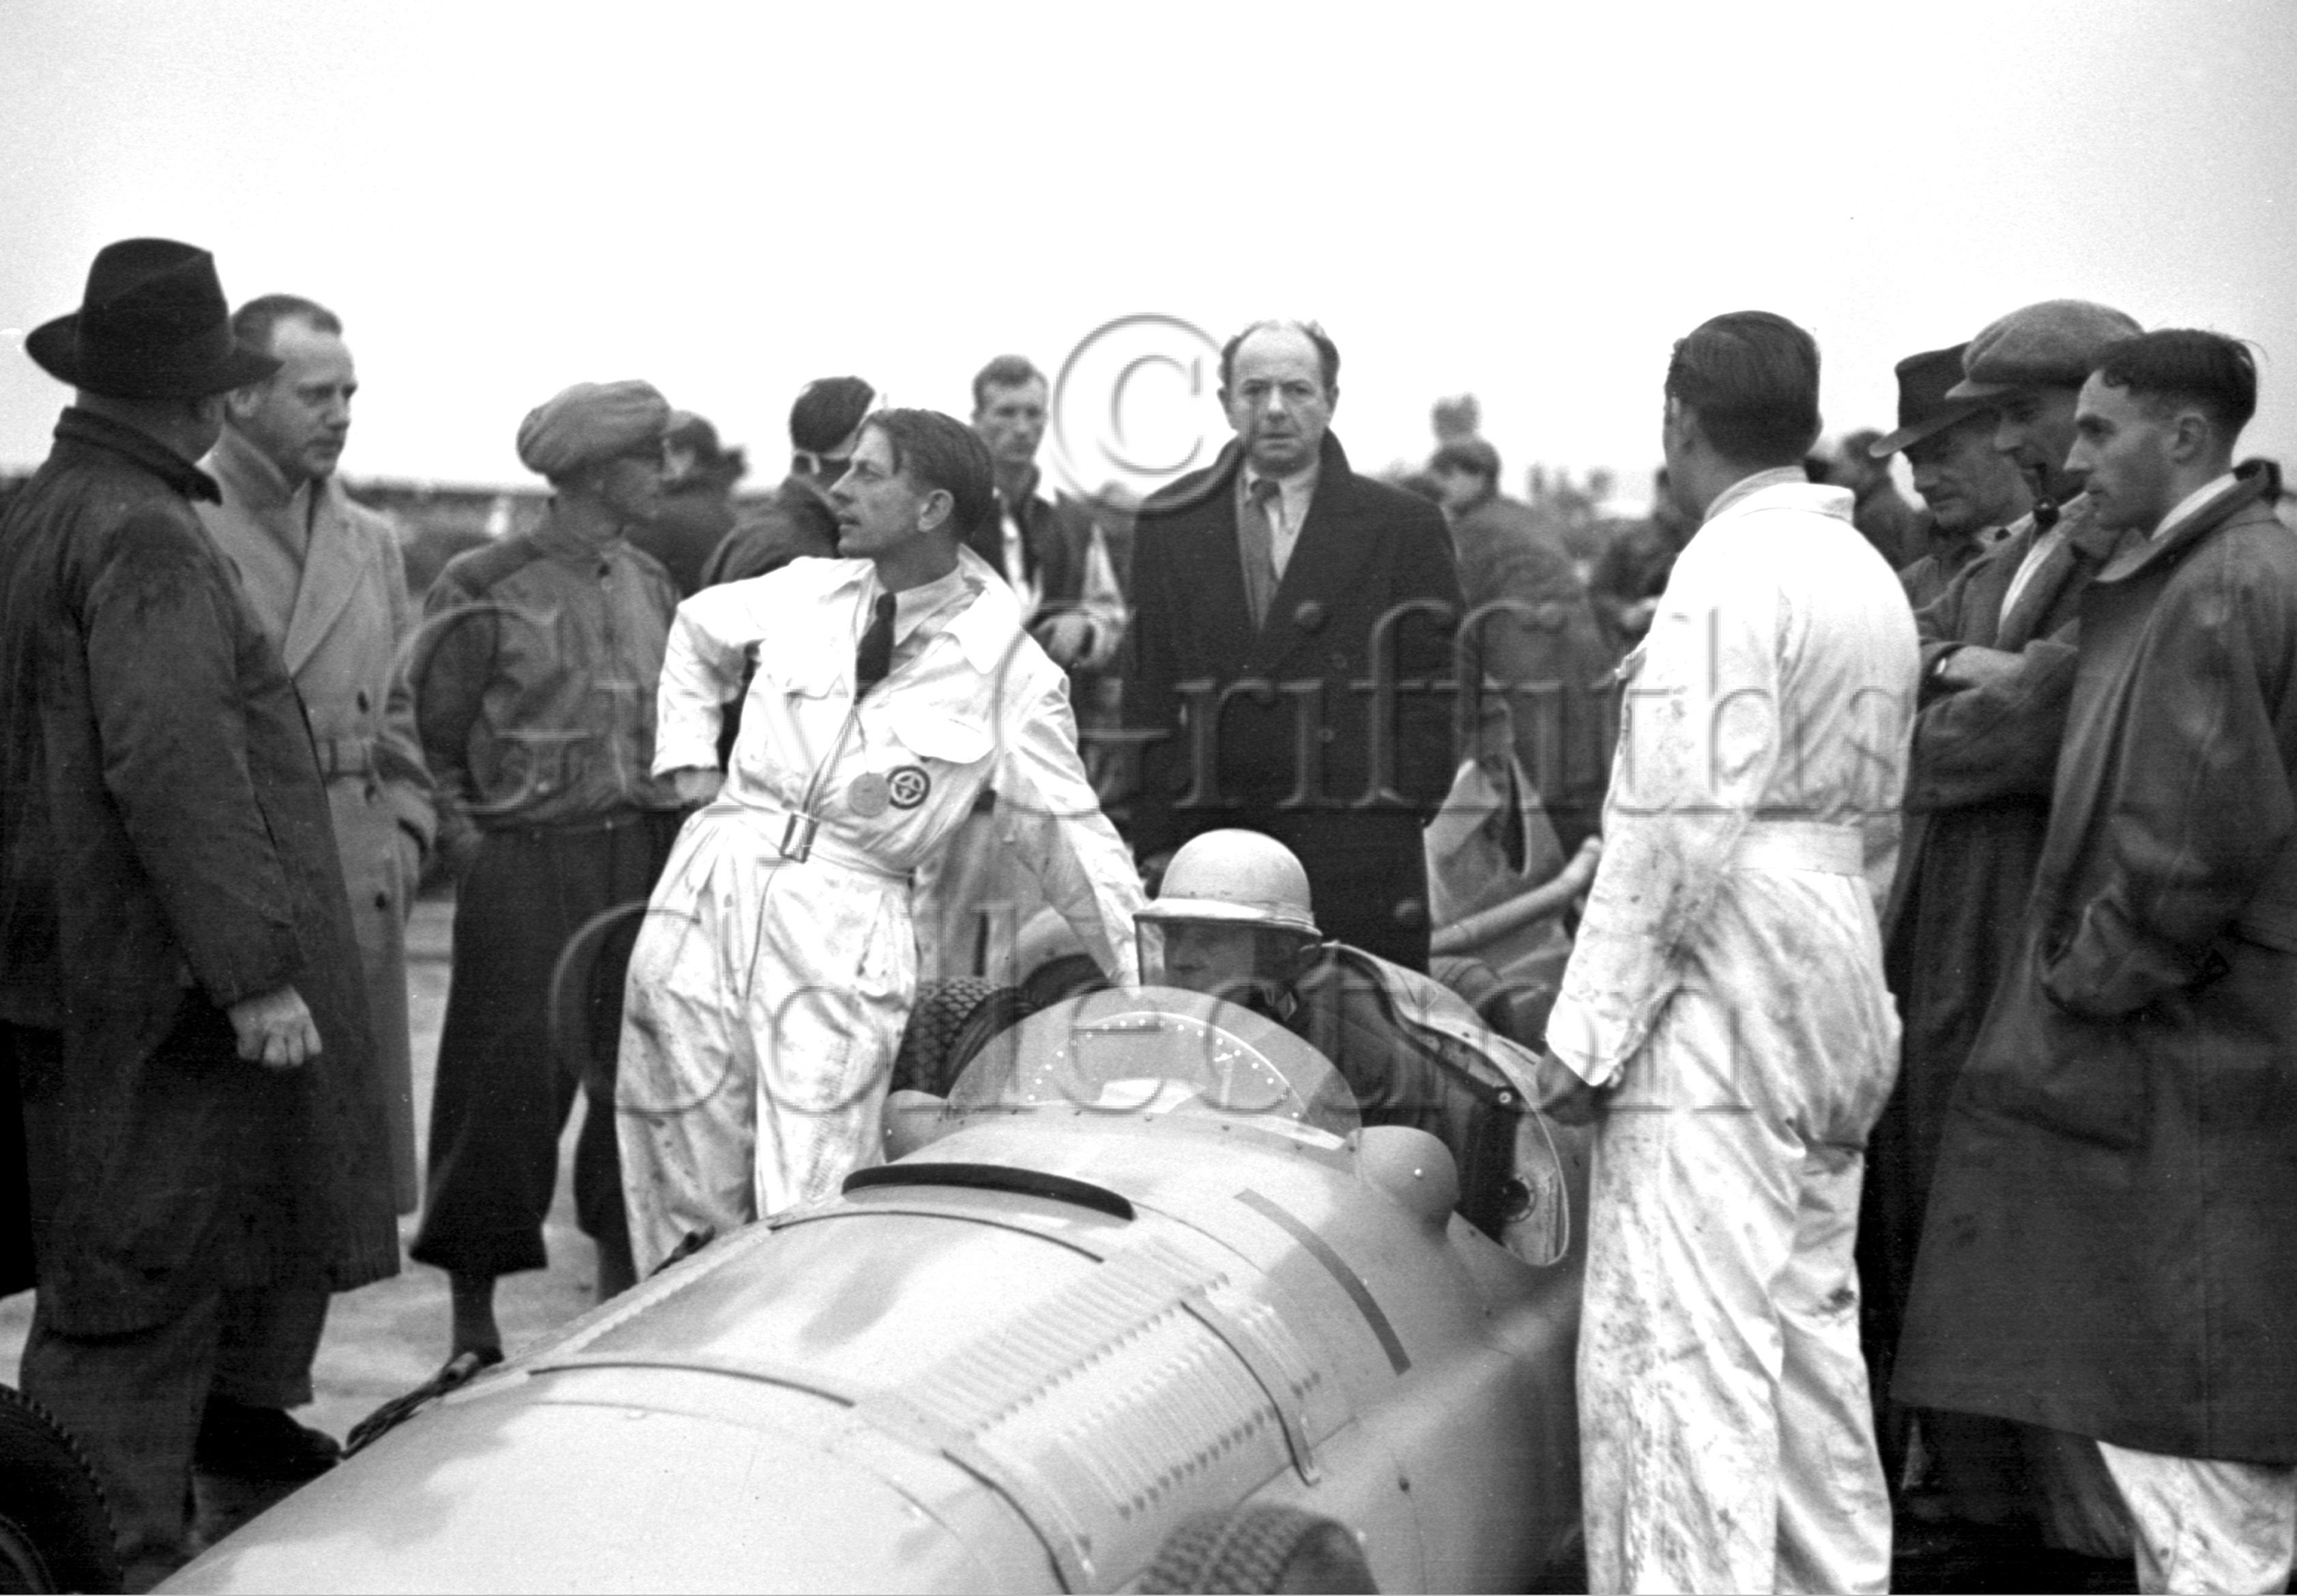 37-791–R-Parnell–BRM–Goodwood–30-09-1950.jpg - The Guy Griffiths Collection